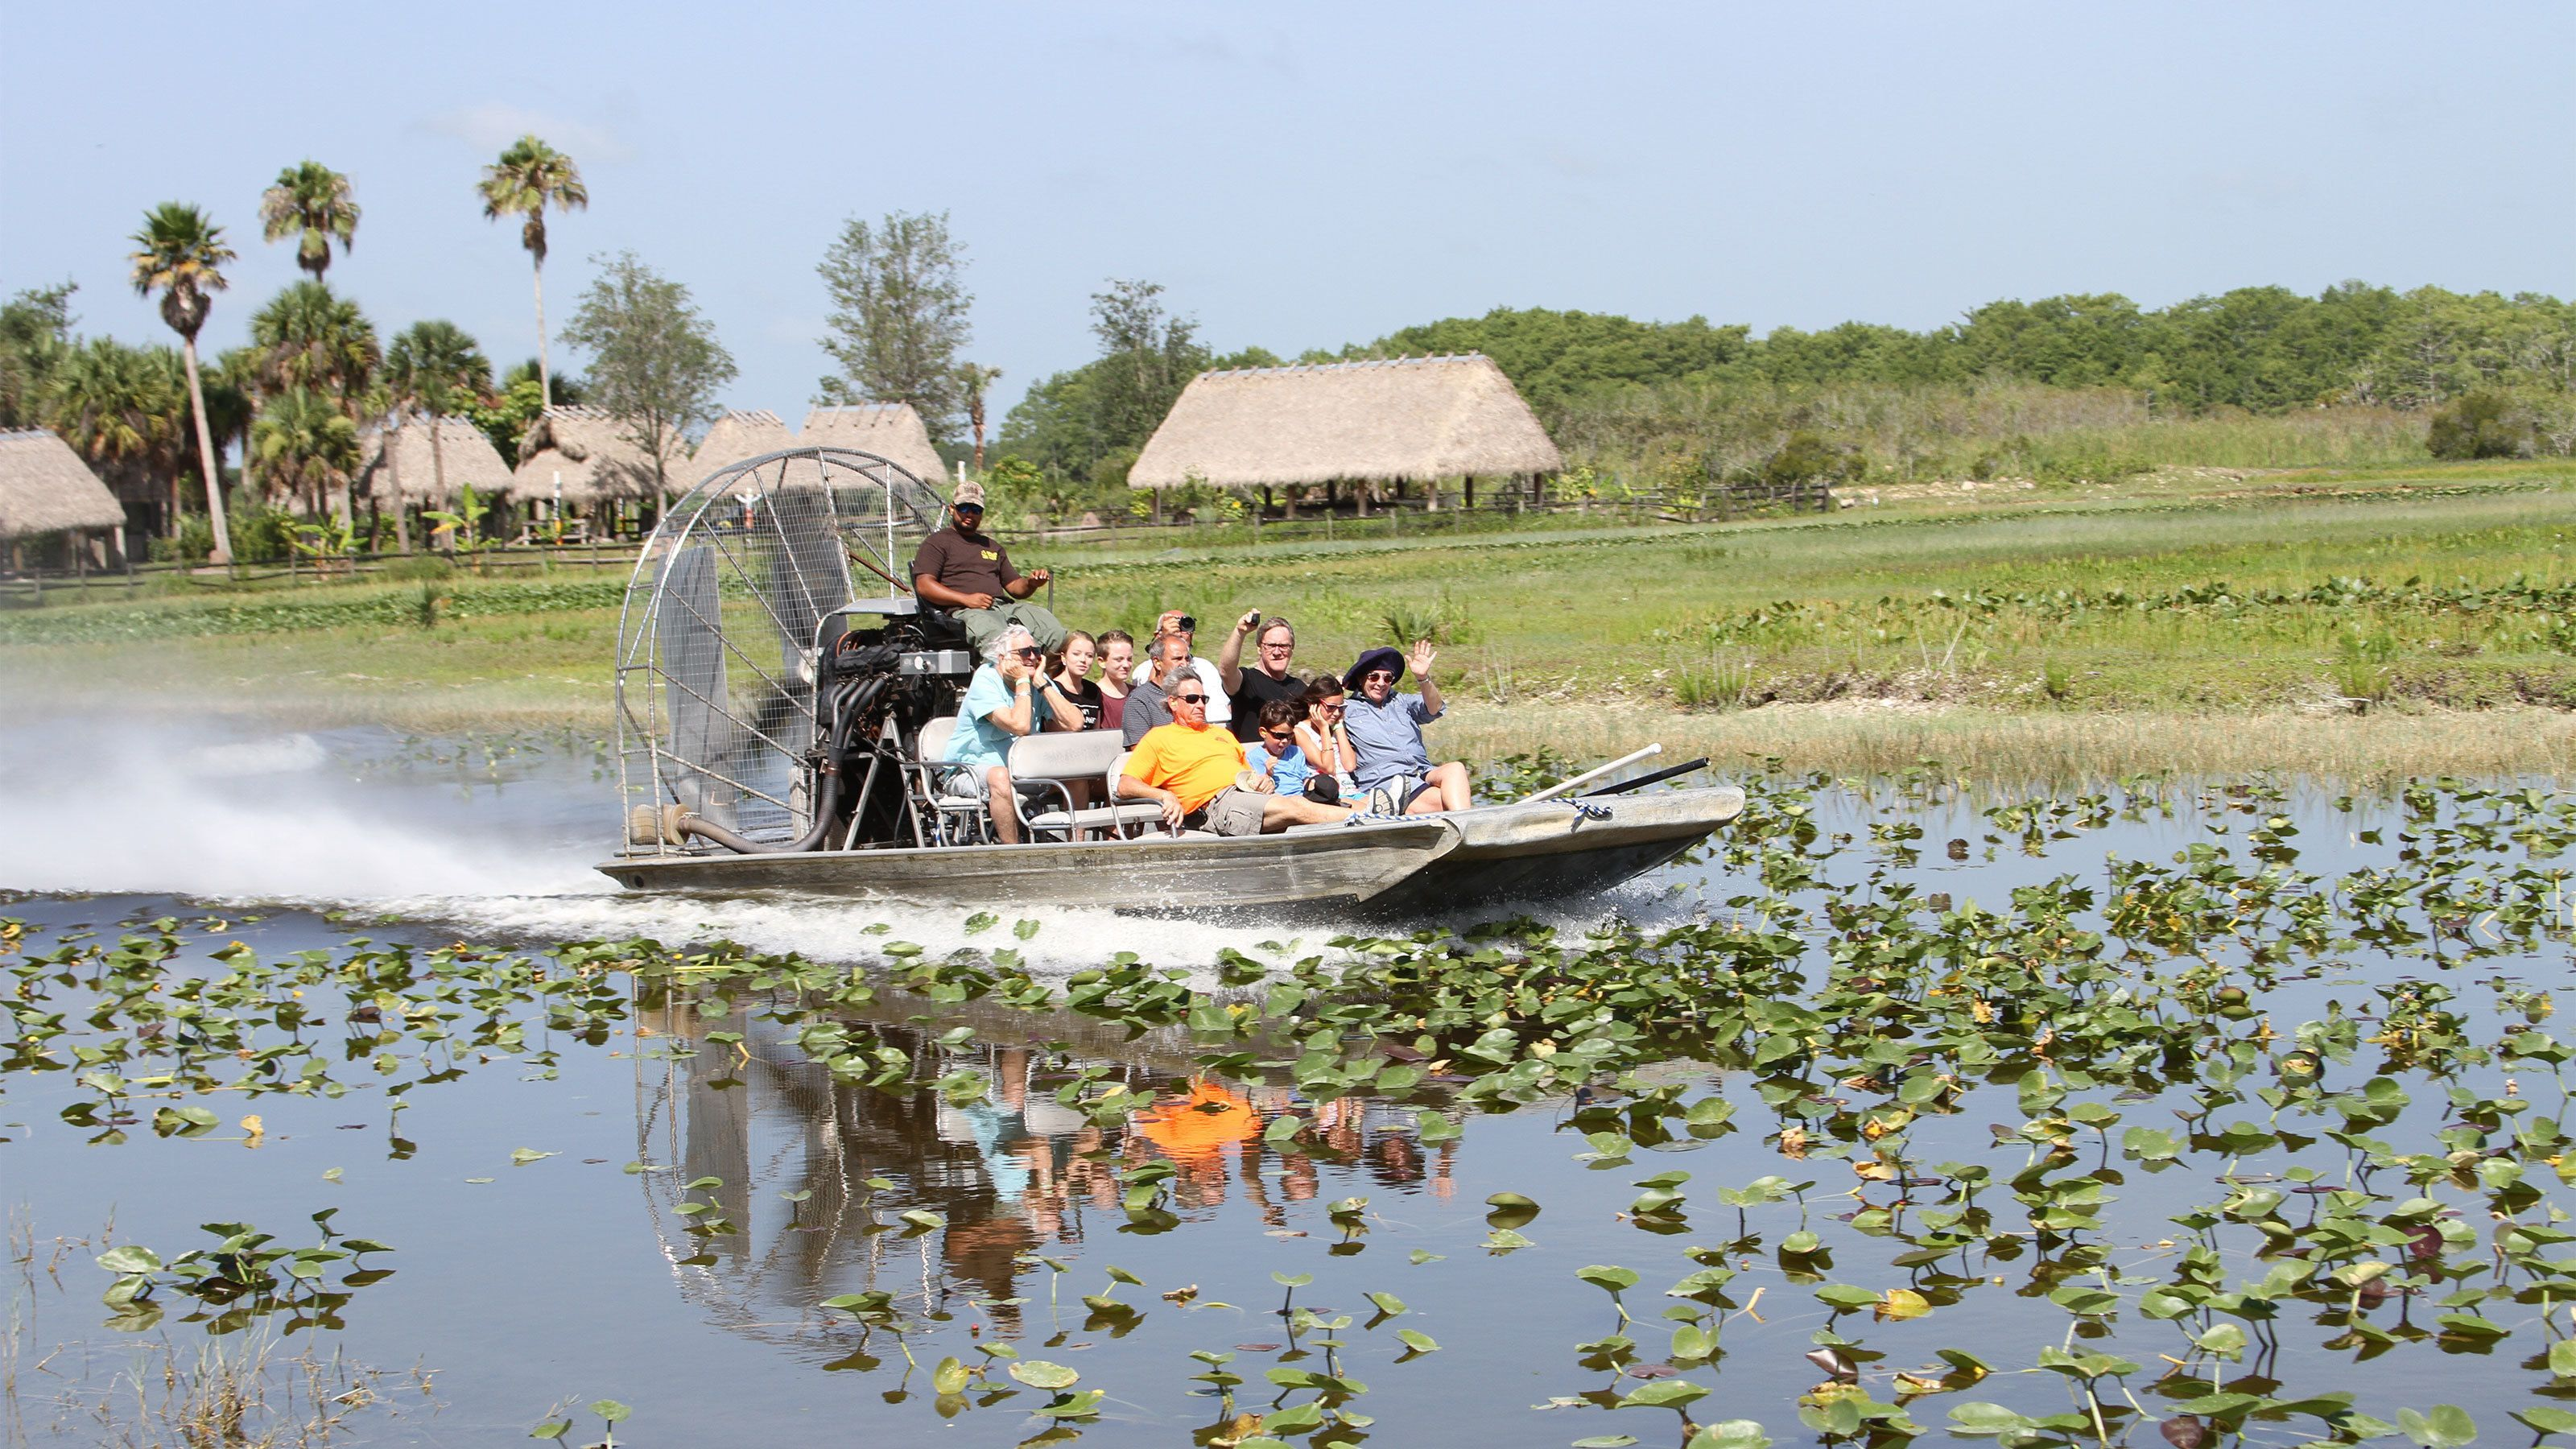 Riding an air boat in Fort Lauderdale